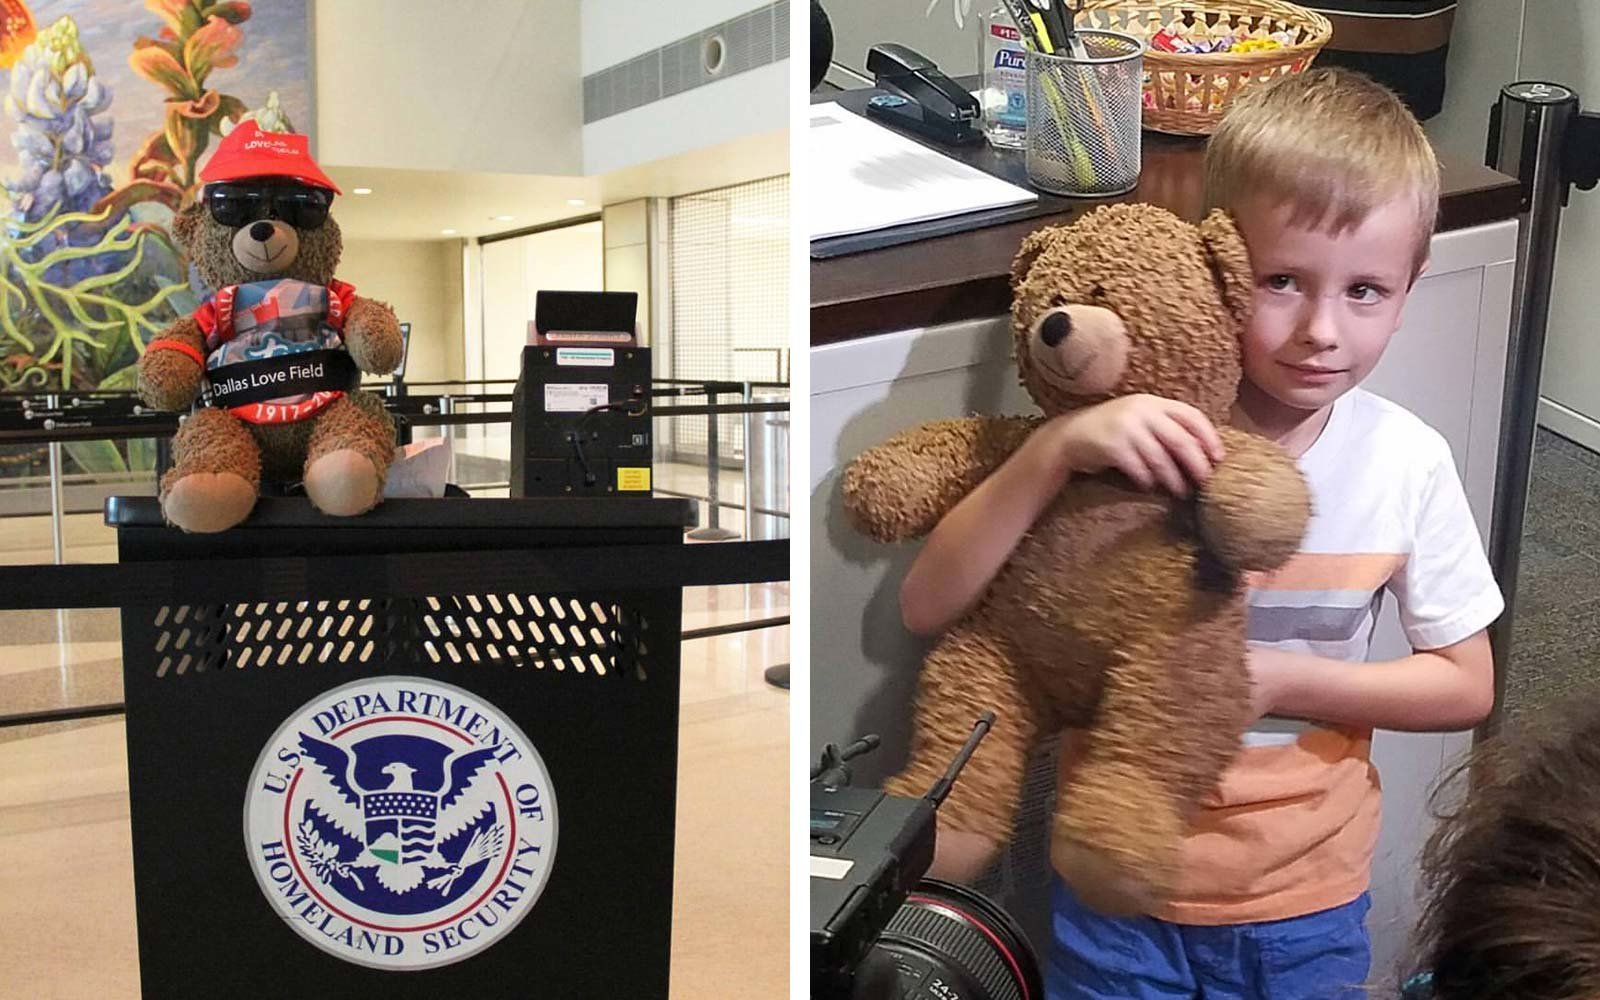 Dallas Love Field Airport Lost and Found Teddy Bear